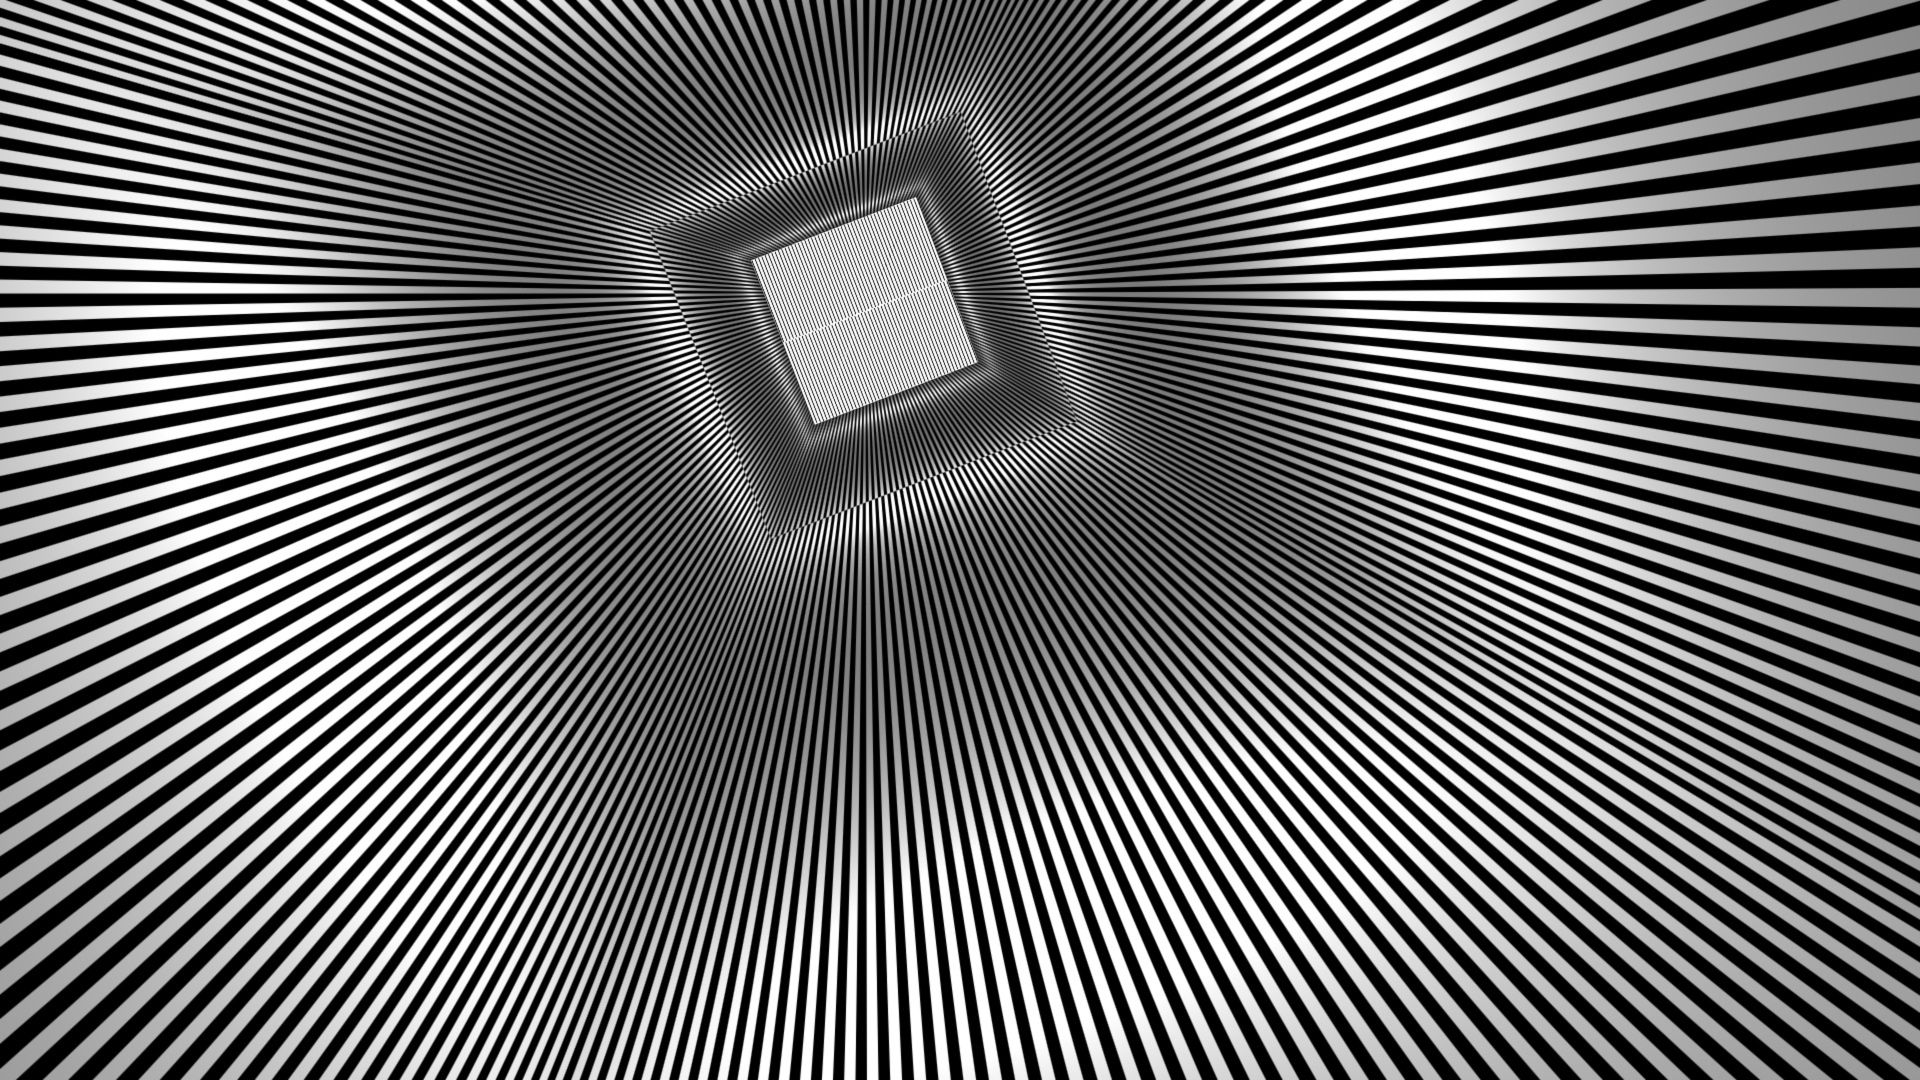 Square Rays Optical Illusion Teaser Psychedelic Wallpaper